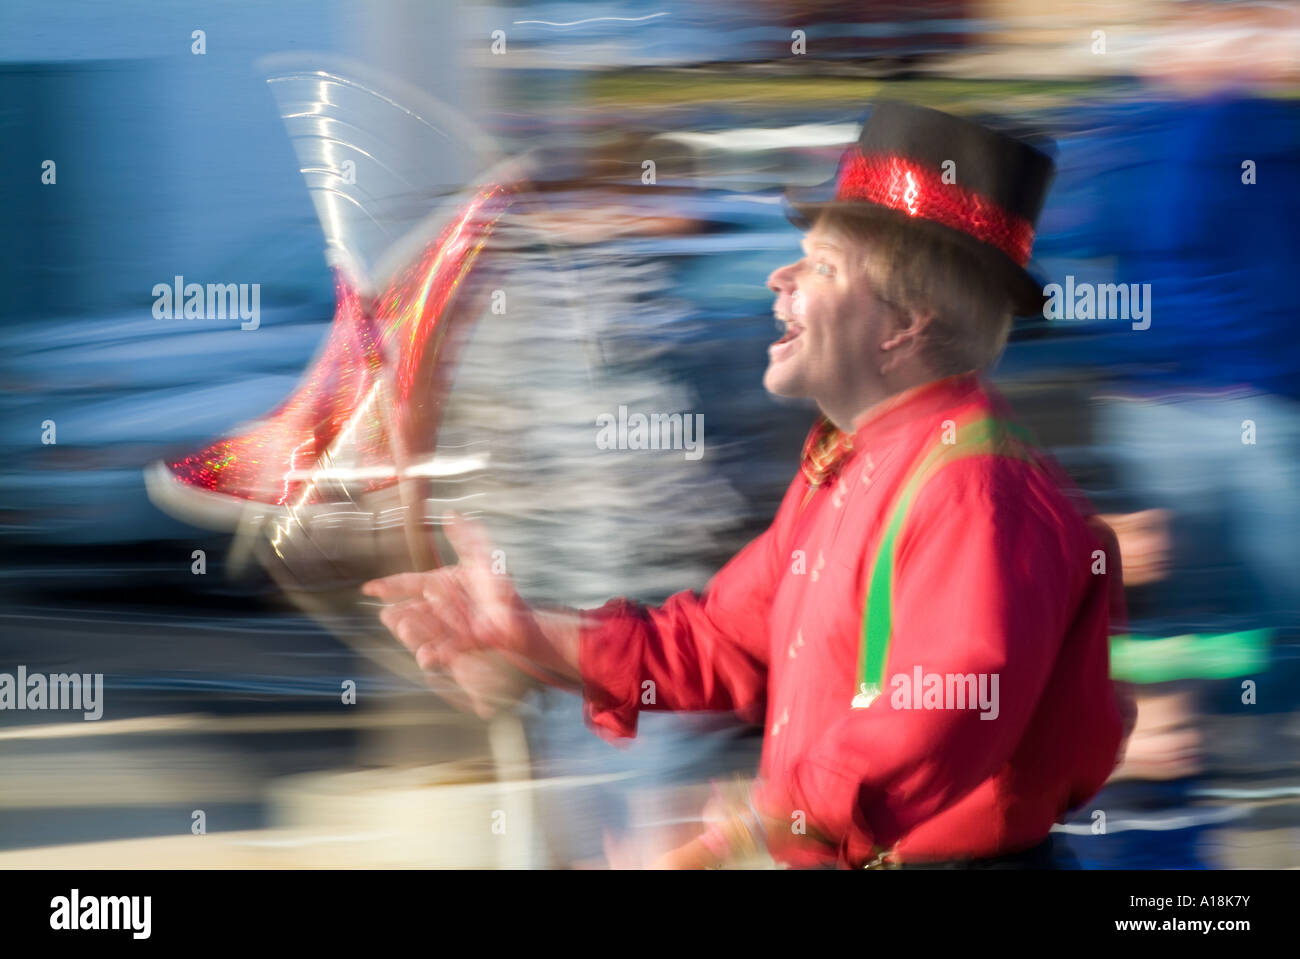 Juggler Performer Walking In A Parade With Motion Blur Showing Action And Movement, Ambler Pennsylvania USA Stock Photo